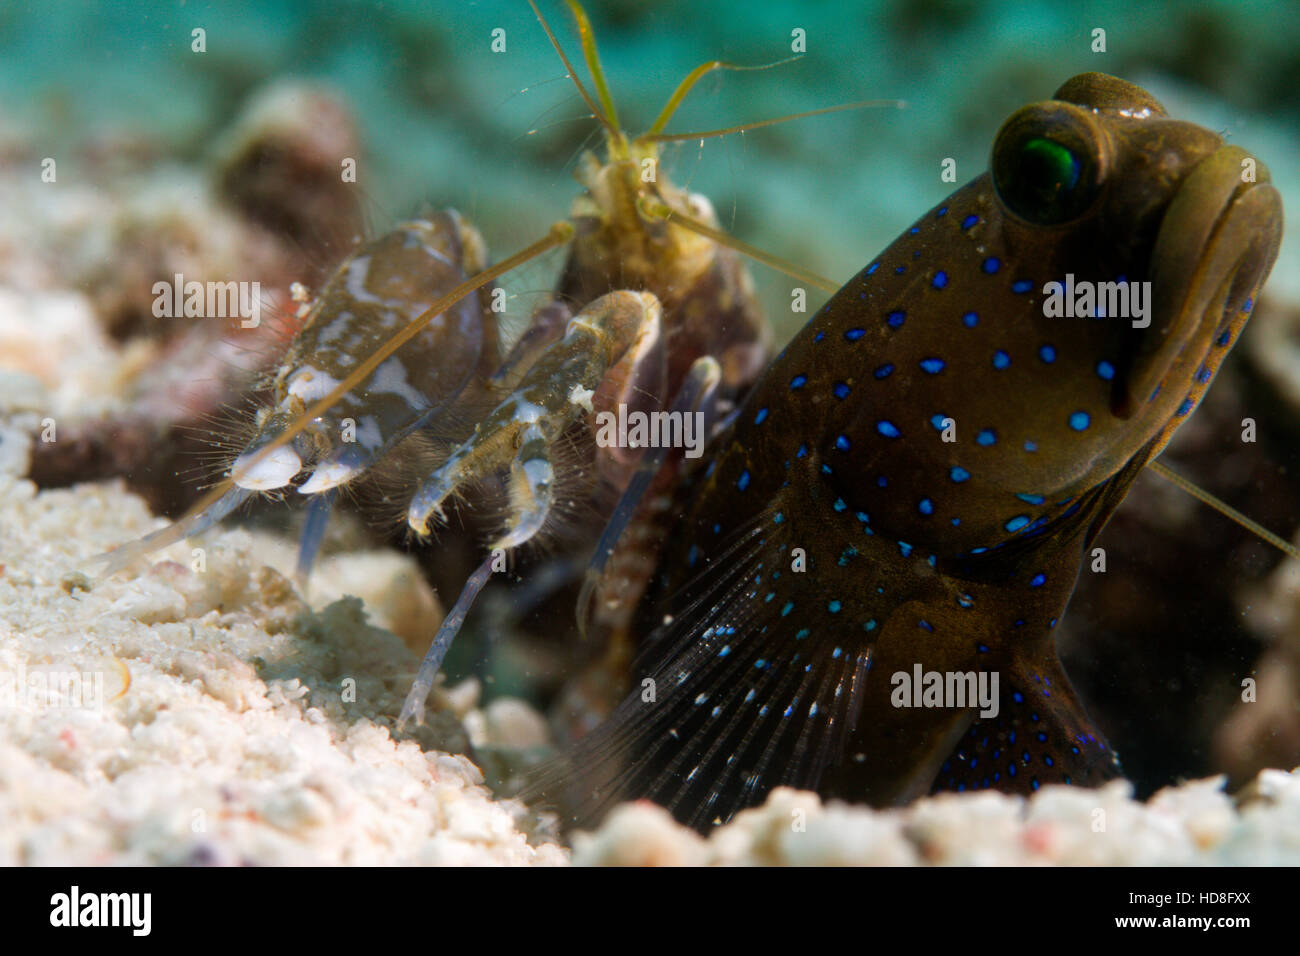 UNderwater macro photography. - Stock Image